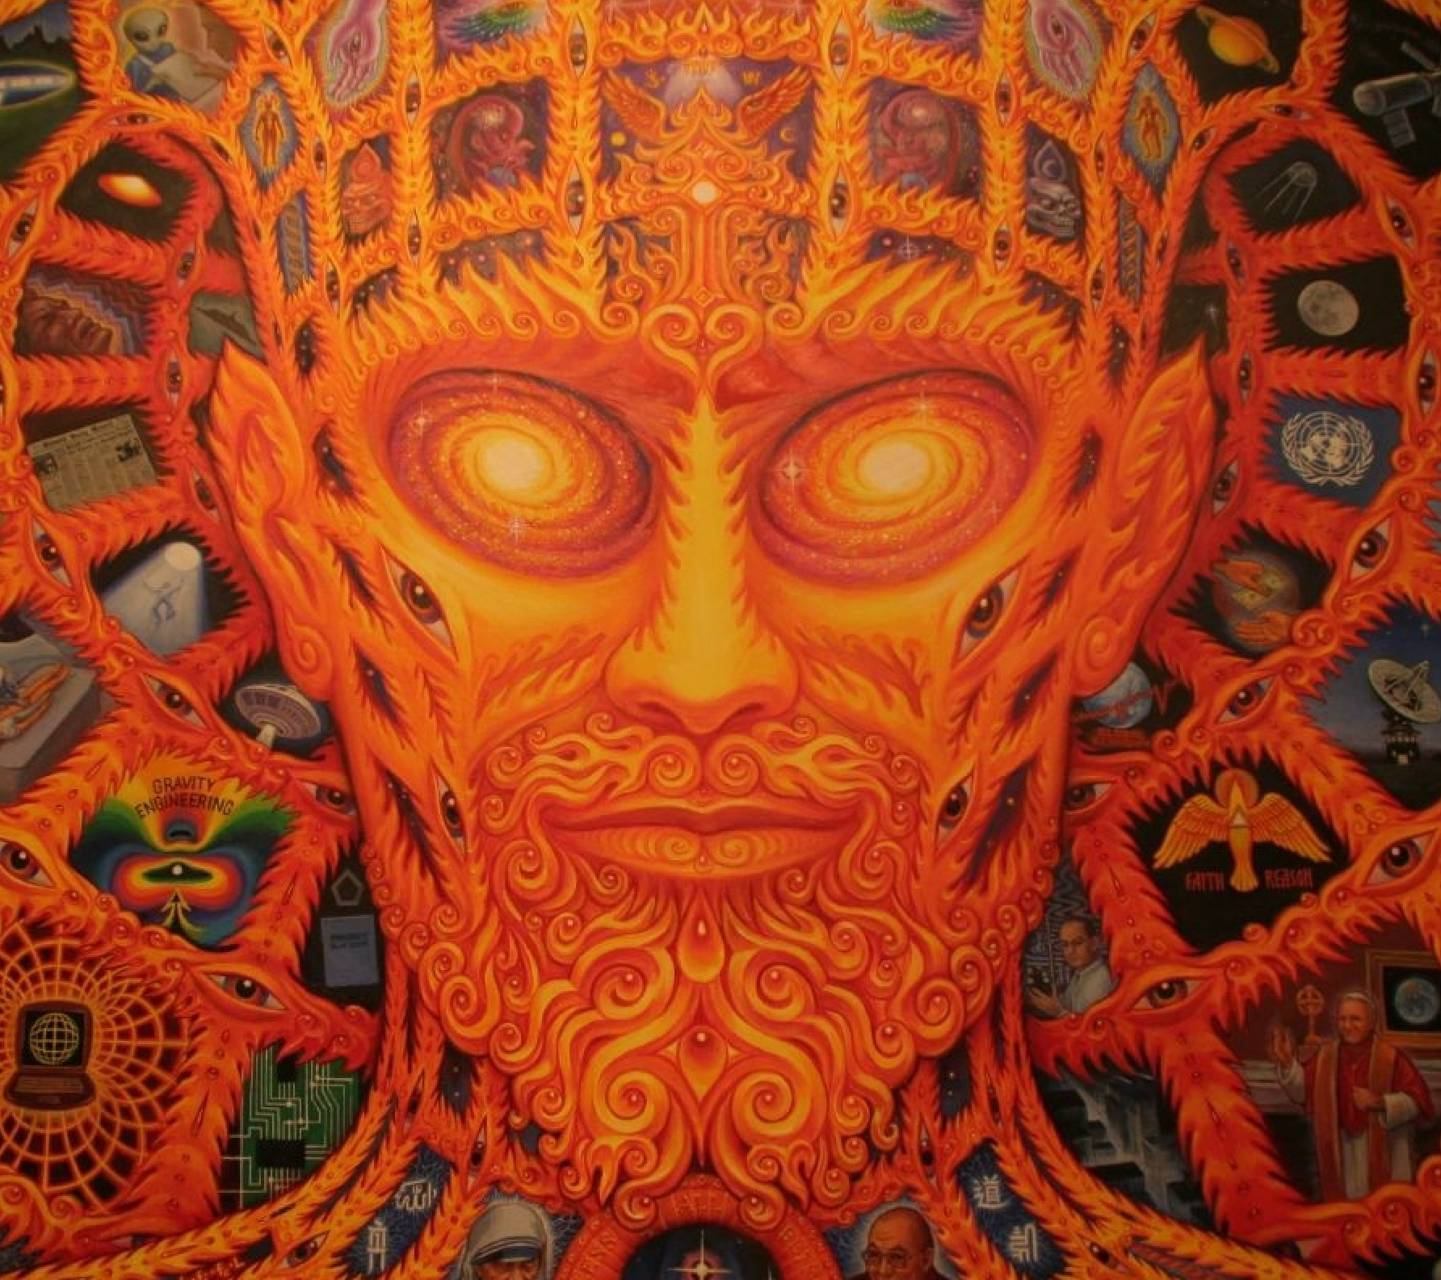 Alex Grey Wallpaper By Dirtybill12 68 Free On Zedge